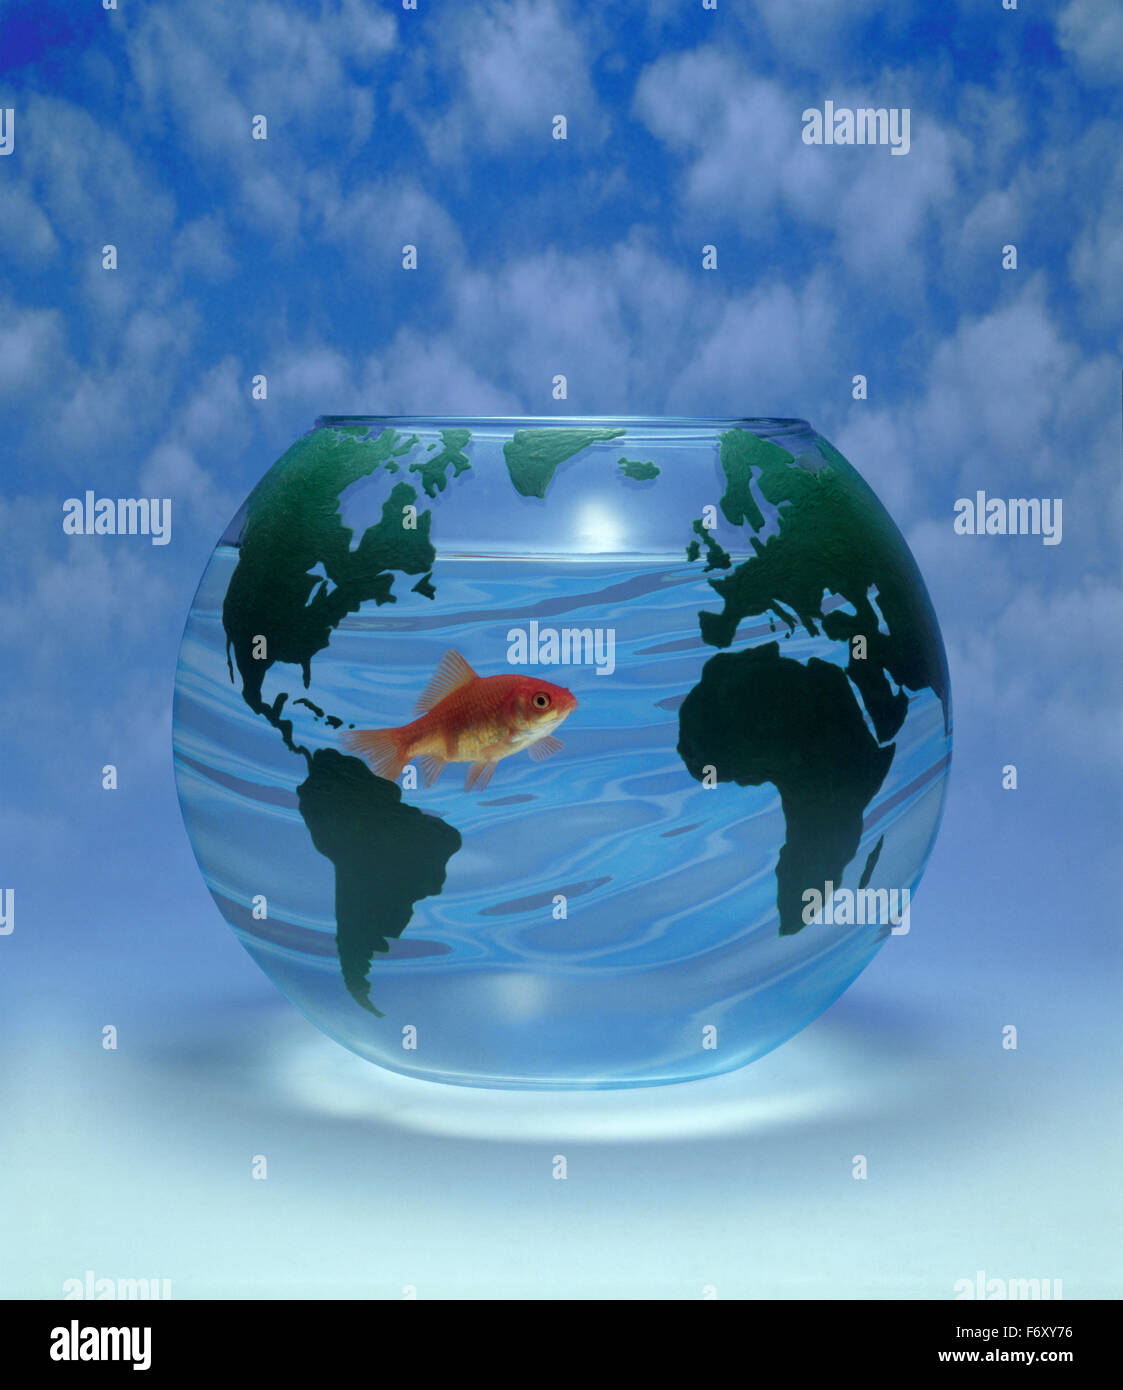 Goldfish in clear water in a bowl decorated with world map for global warming and pollution - Stock Image